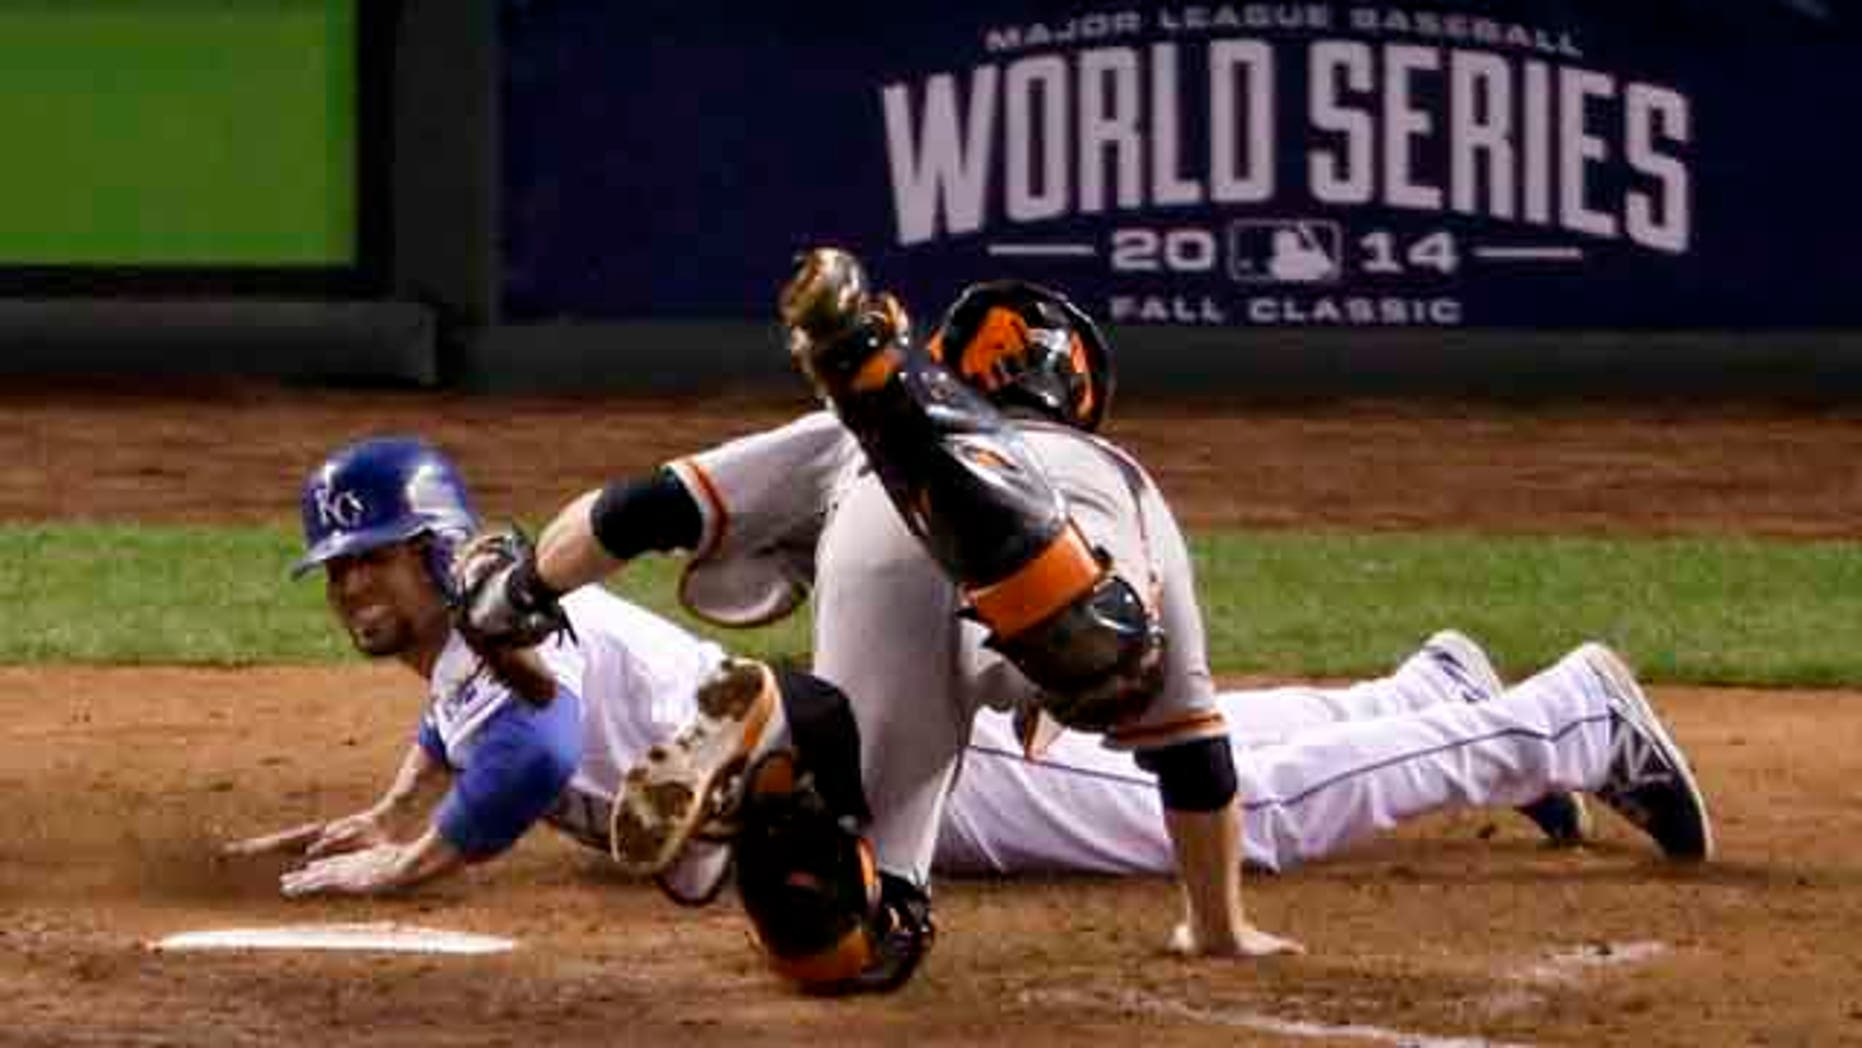 October 28, 2014: Kansas City Royals' Omar Infante, left, scores past San Francisco Giants catcher Buster Posey on a double by Alcides Escobar during the fifth inning of Game 6 of baseball's World Series in Kansas City. (AP Photo/Charlie Riedel)